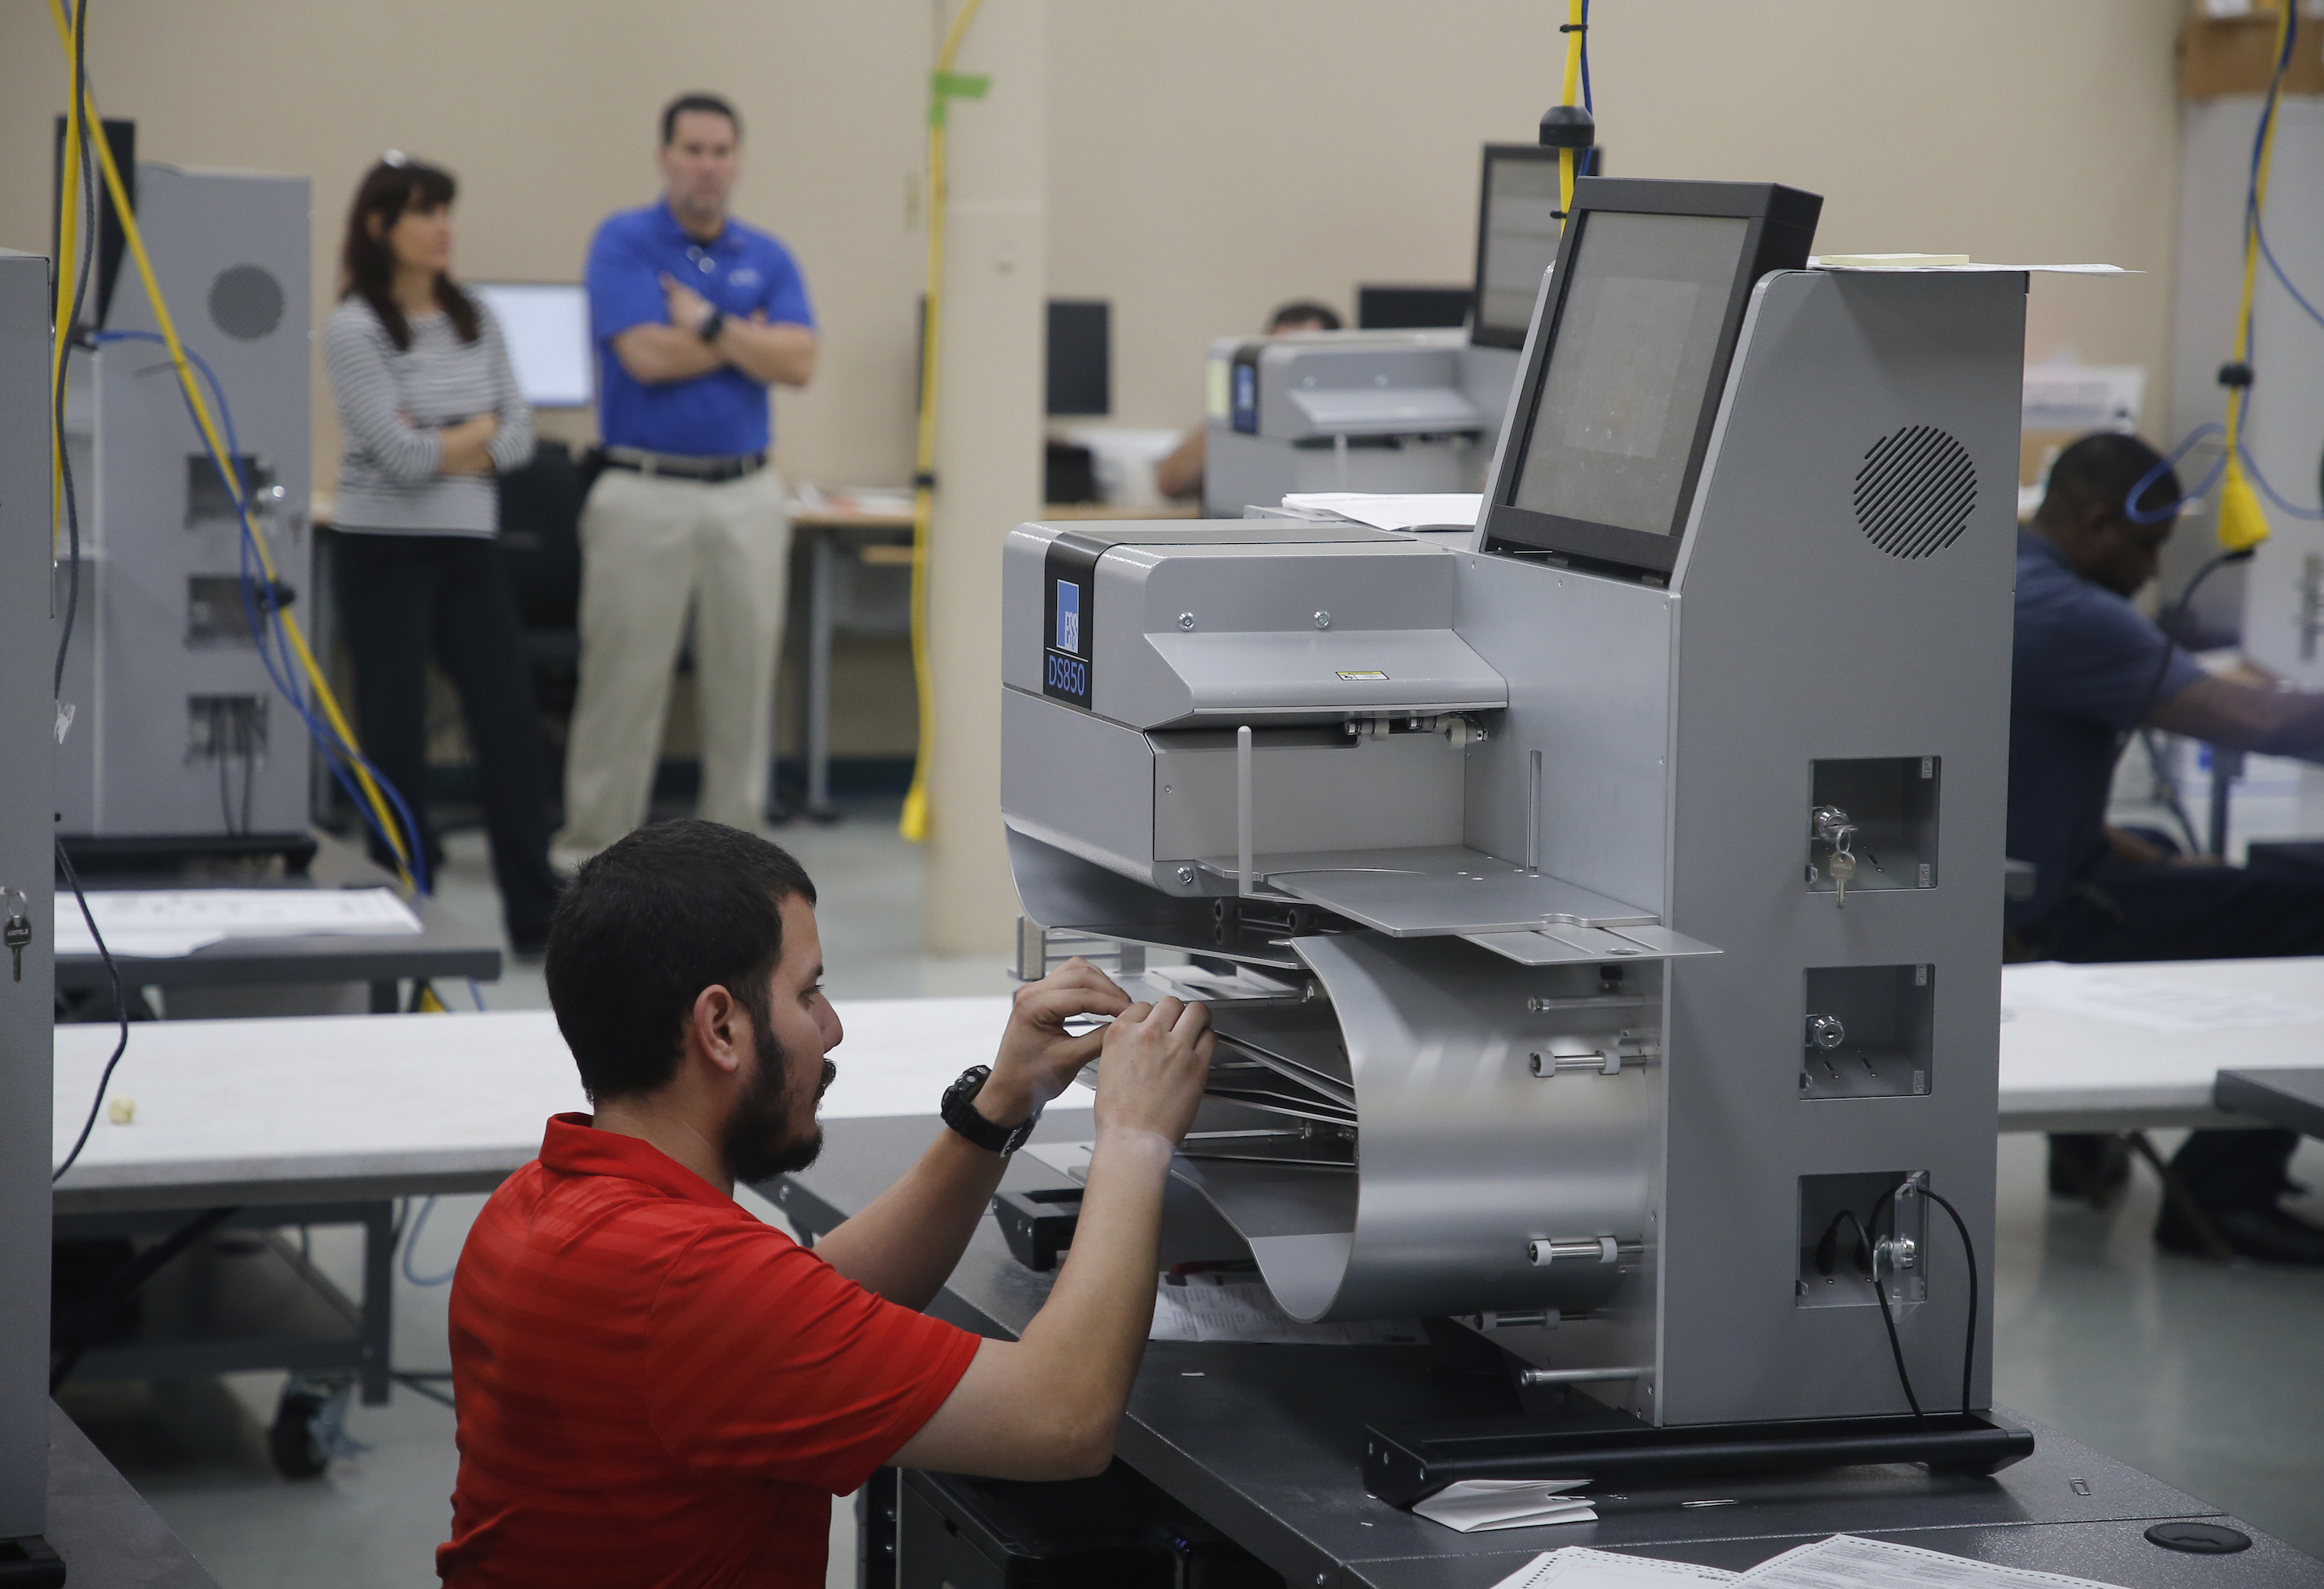 LAUDERHILL, FL - NOVEMBER 11: An elections official works on a counting machine as it was calibrated prior to the start of a recount of all votes at the Broward County Supervisor of Elections Office on November 11, 2018 in Lauderhill, Florida. Voting machines and counting systems made by Election Systems & Software were improperly configured and ripe for election hacking, Vice reports. (Photo by Joe Skipper/Getty Images)